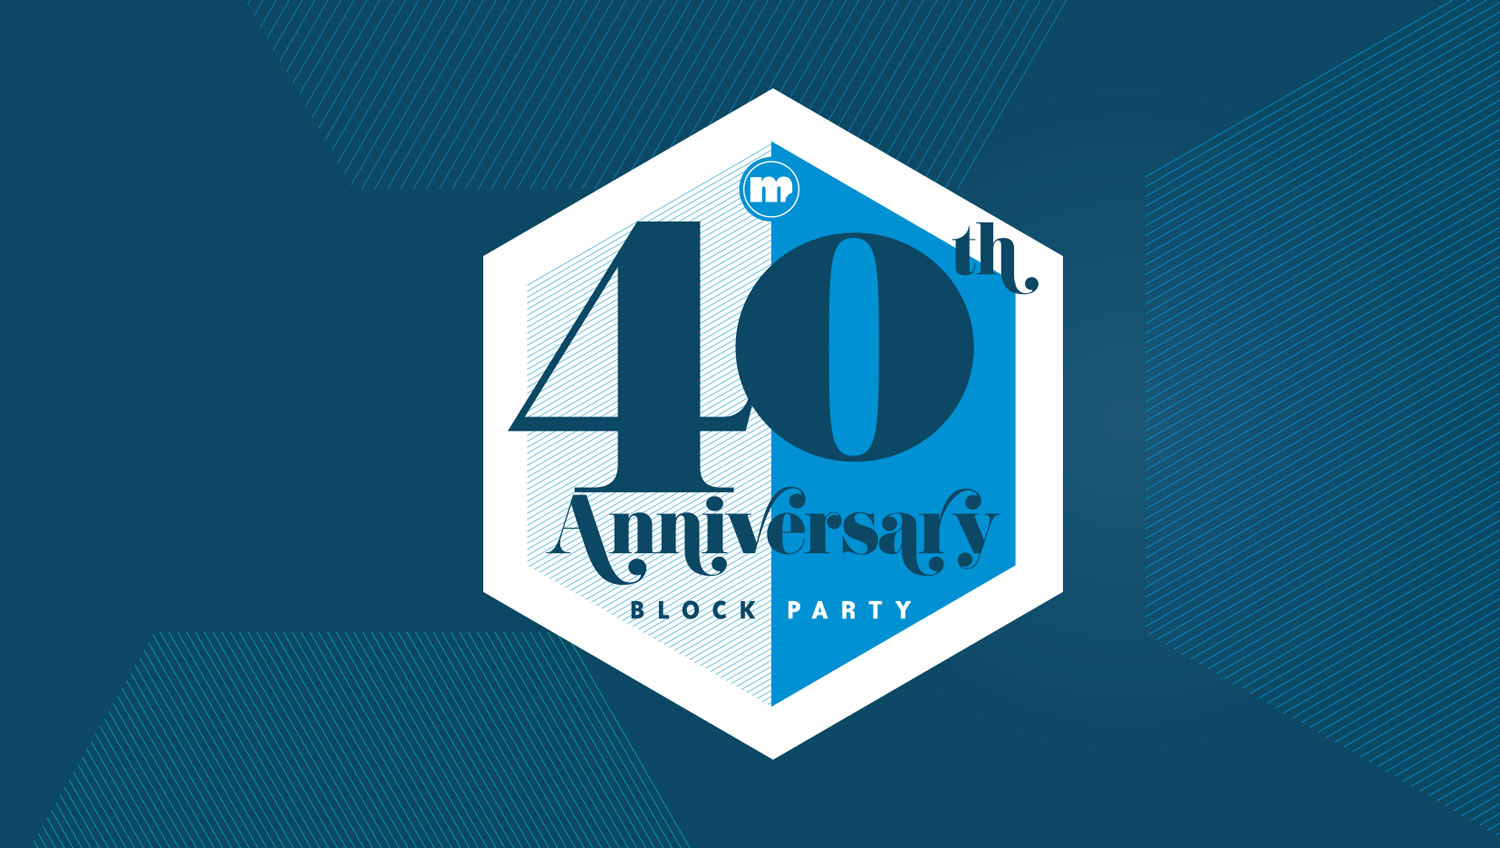 Image for 40th Anniversary Block Party